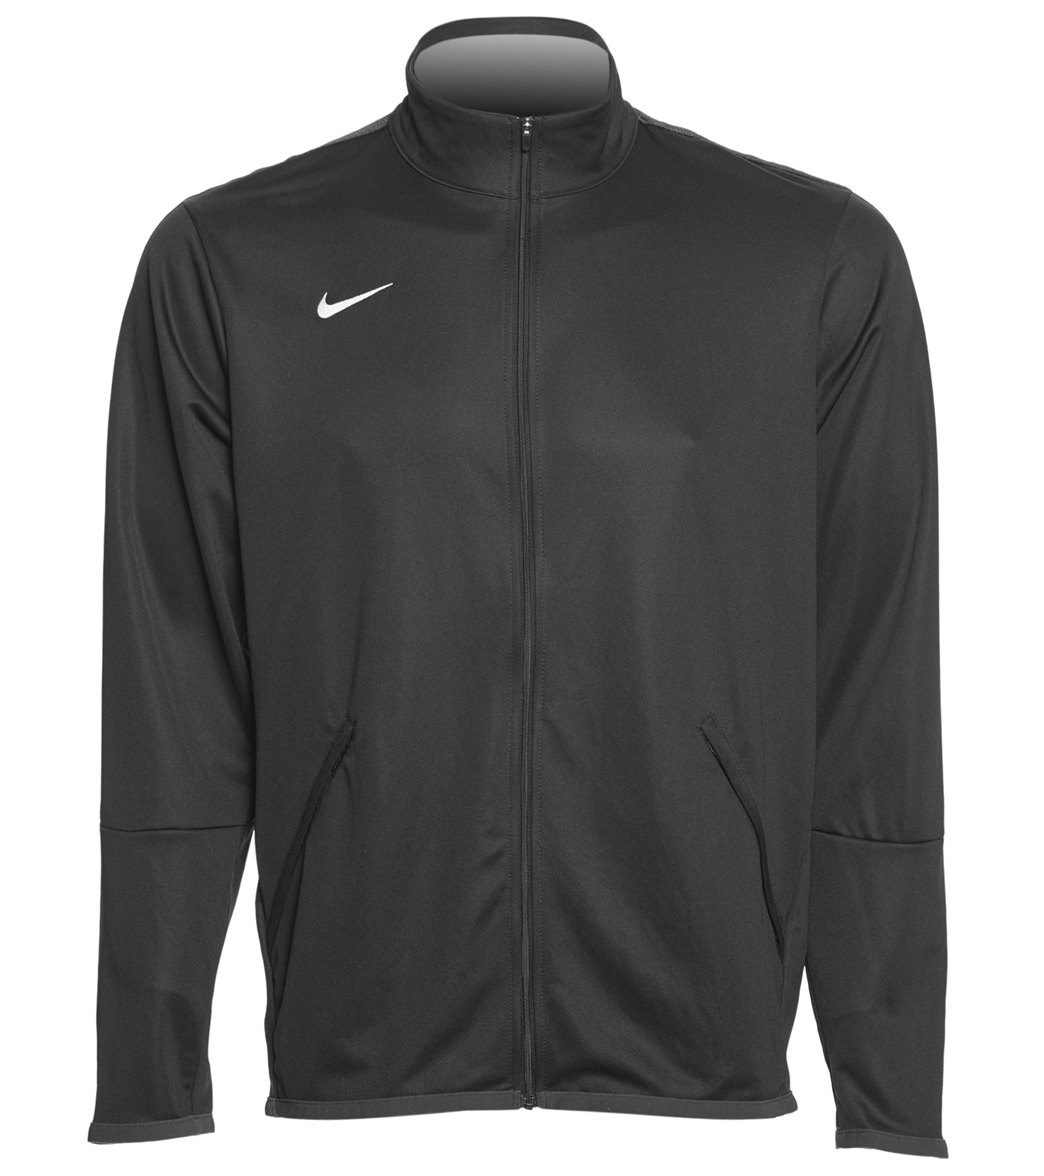 0e73c56a58628 Nike Men s Training Jacket at SwimOutlet.com - Free Shipping